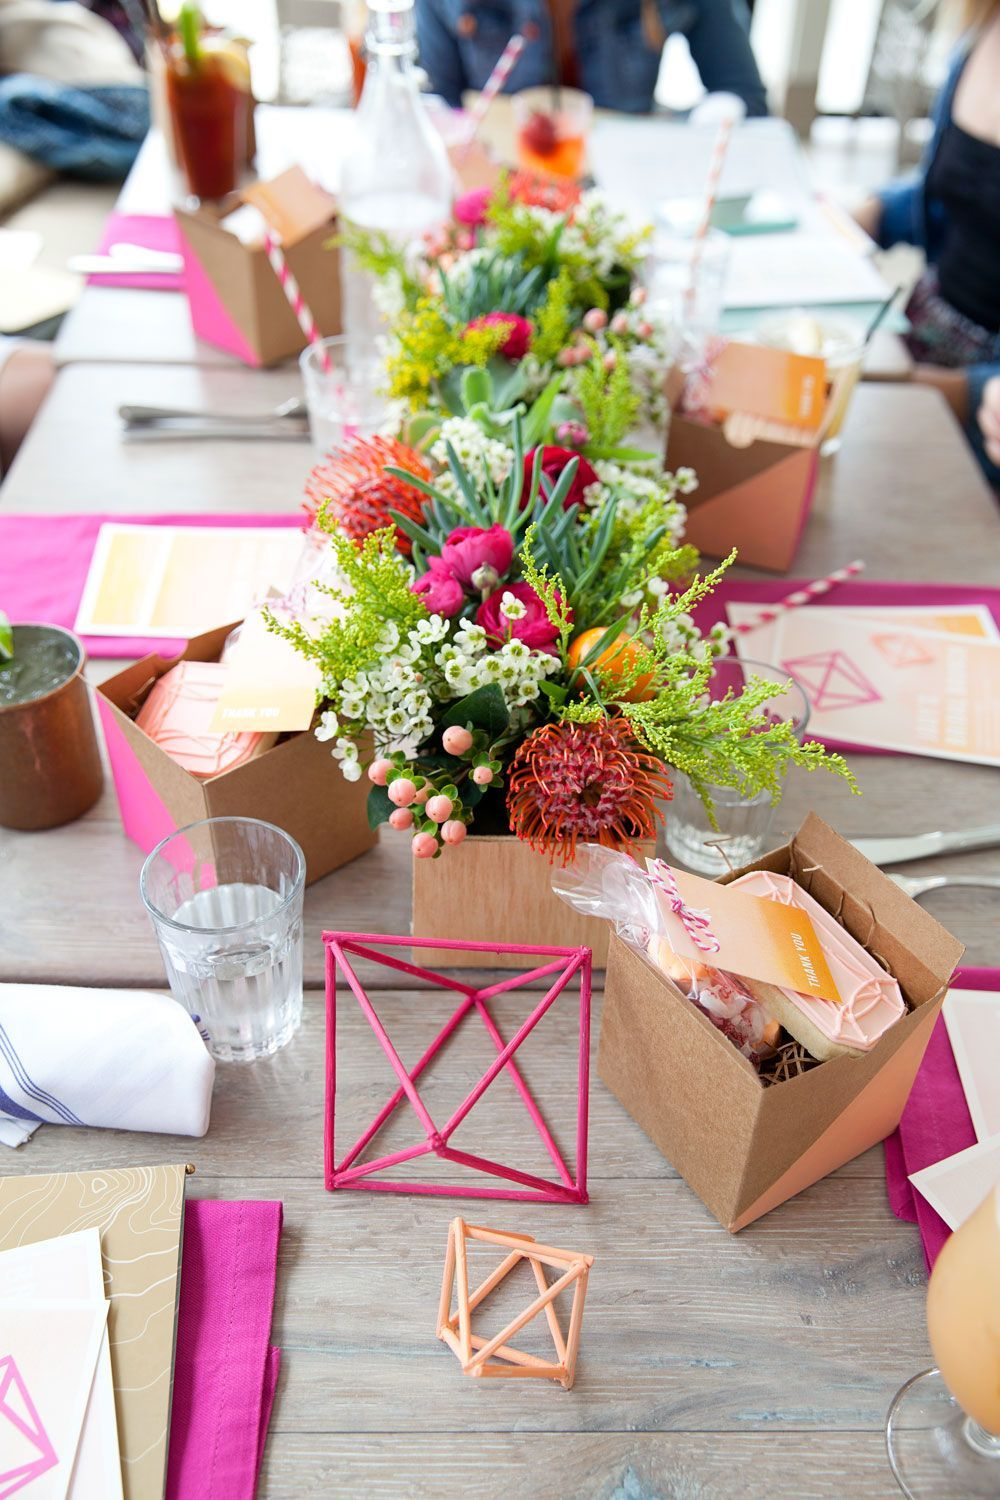 Sensational Bridal Shower Brunch Diy Bachelorette Inspiration Bridal Home Interior And Landscaping Ologienasavecom